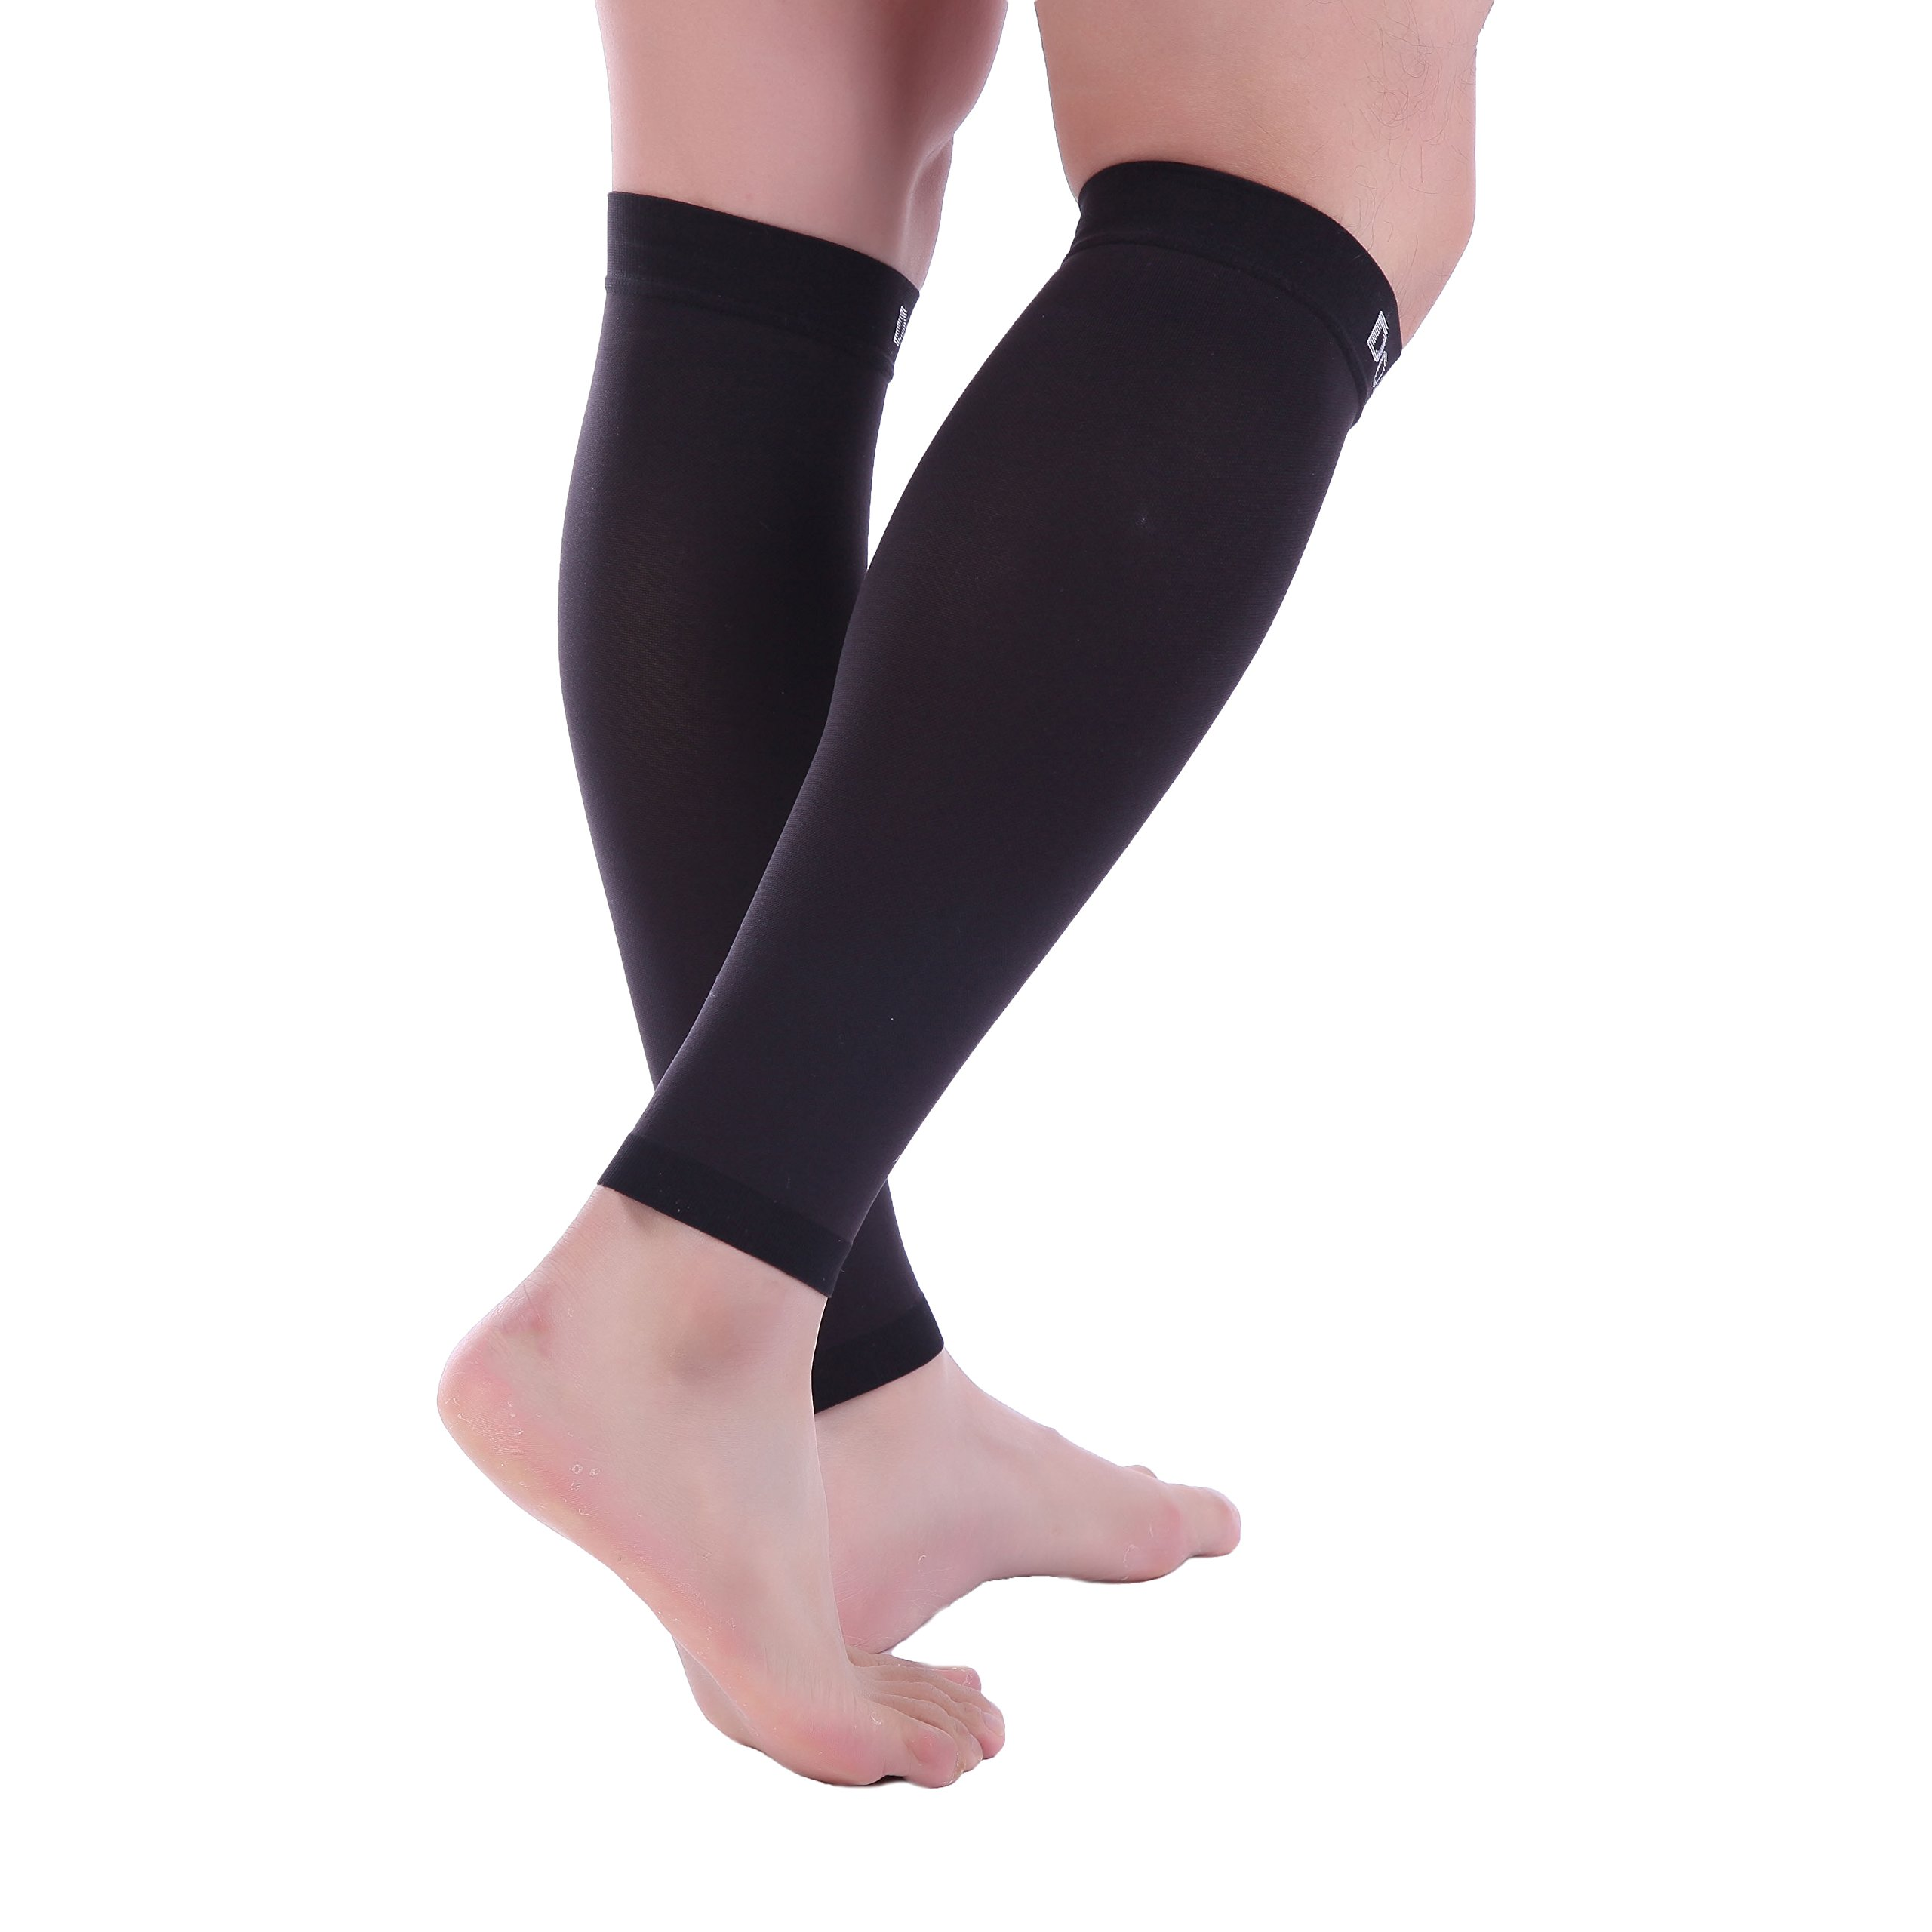 Doc Miller Premium Calf Compression Sleeve 1 Pair 20-30mmHg Strong Calf Support Graduated Pressure for Sports Running Muscle Recovery Shin Splints Varicose Veins Plus Size (Black, 2-Pack, XX-Large) by Doc Miller (Image #7)